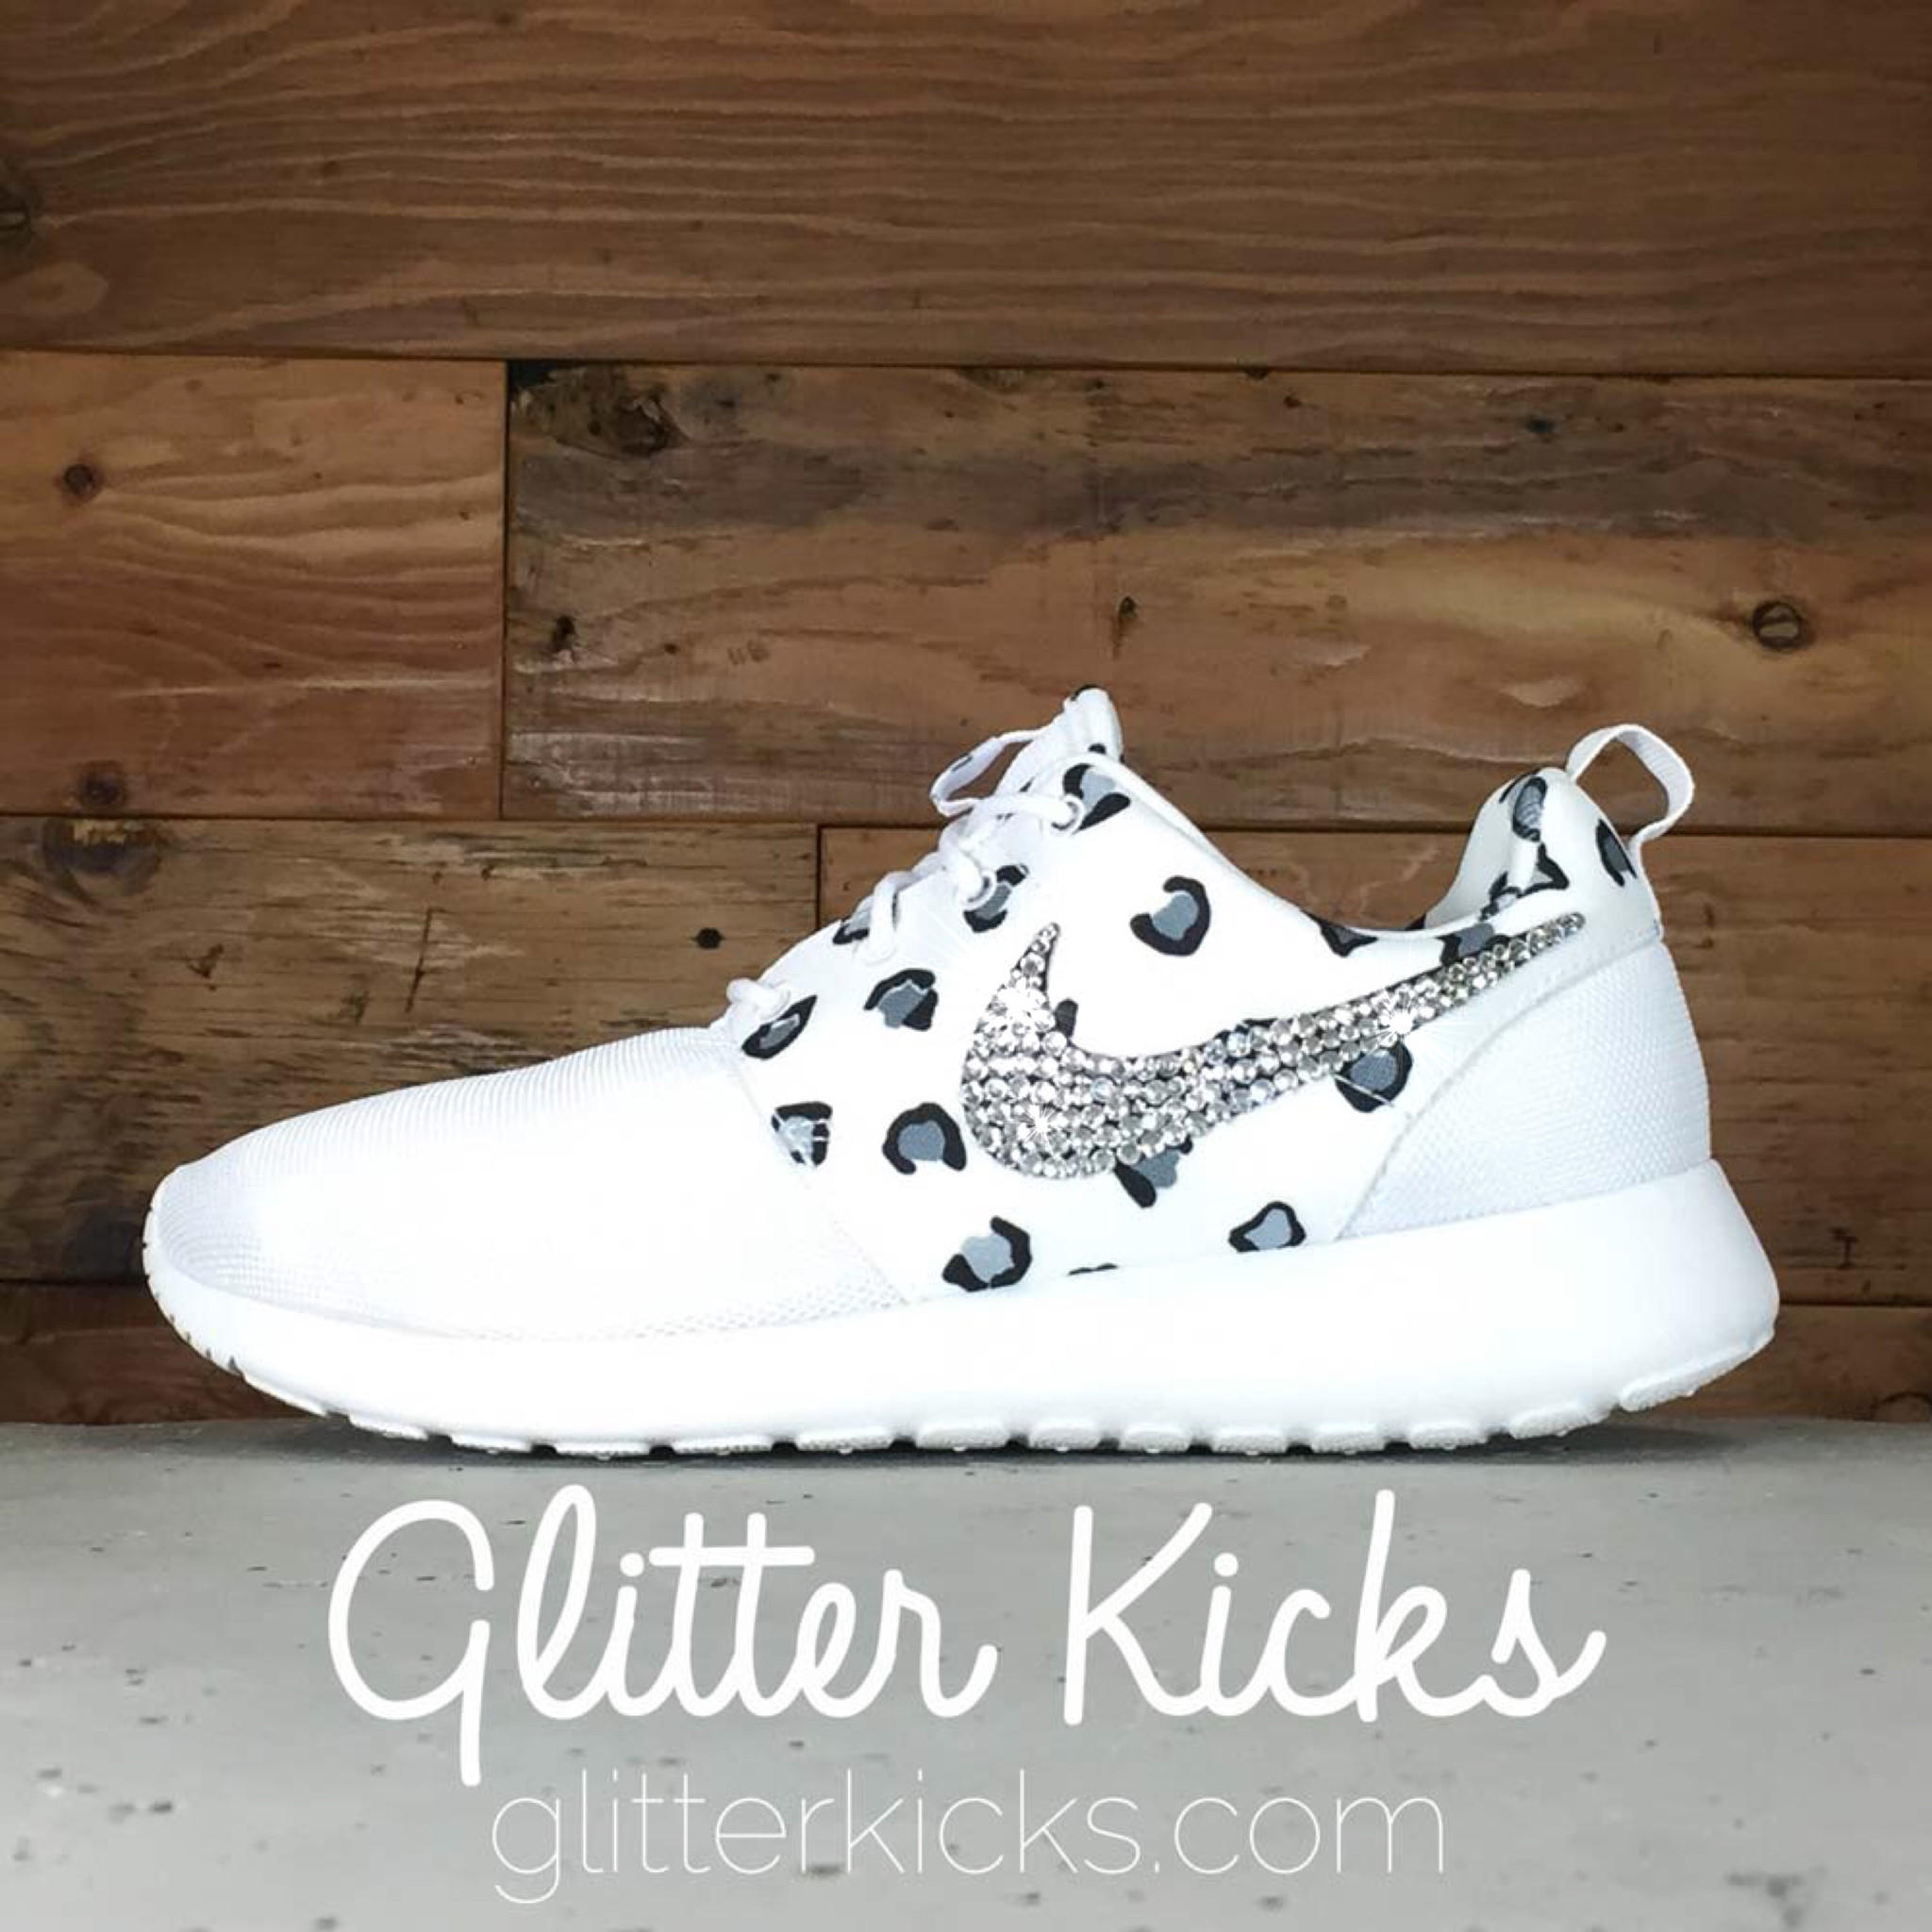 Nike Roshe One Customized by Glitter from Glitter Kicks 87c3856eb5f8